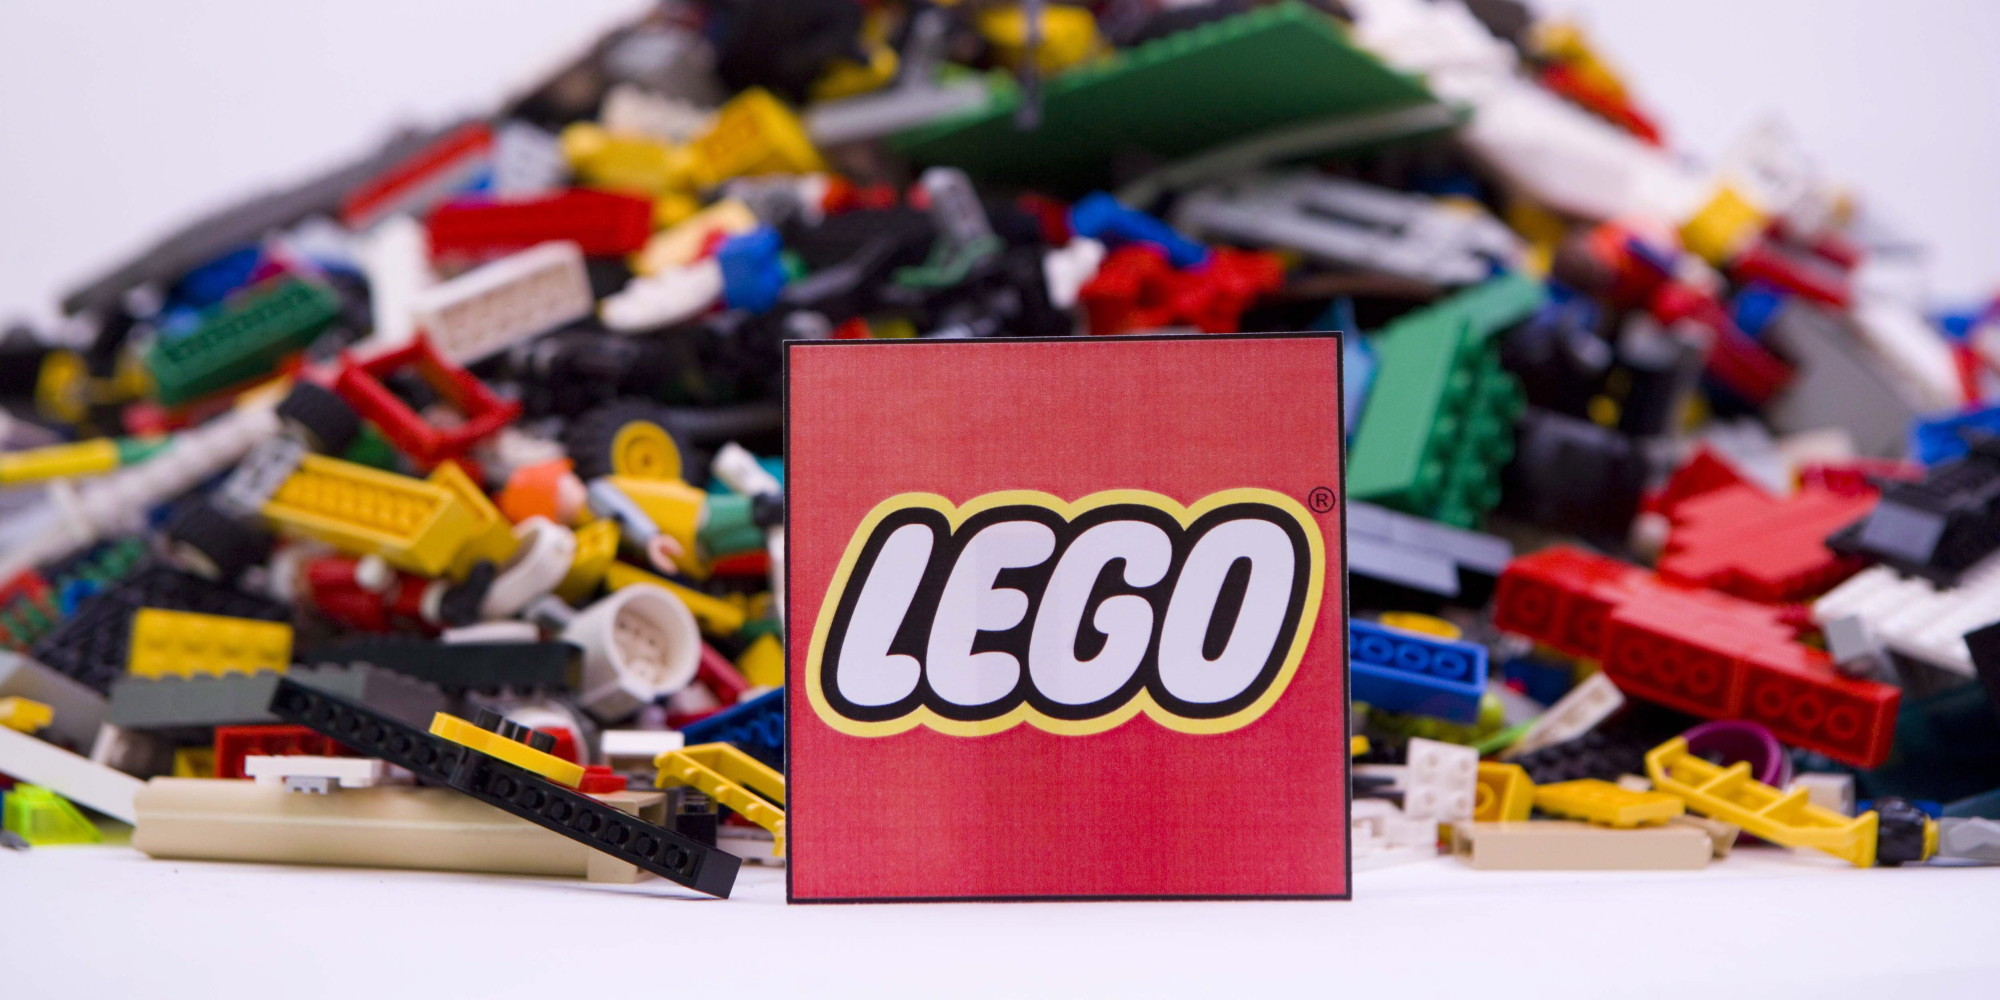 LEGO's Girl Problem Starts With Management | HuffPost